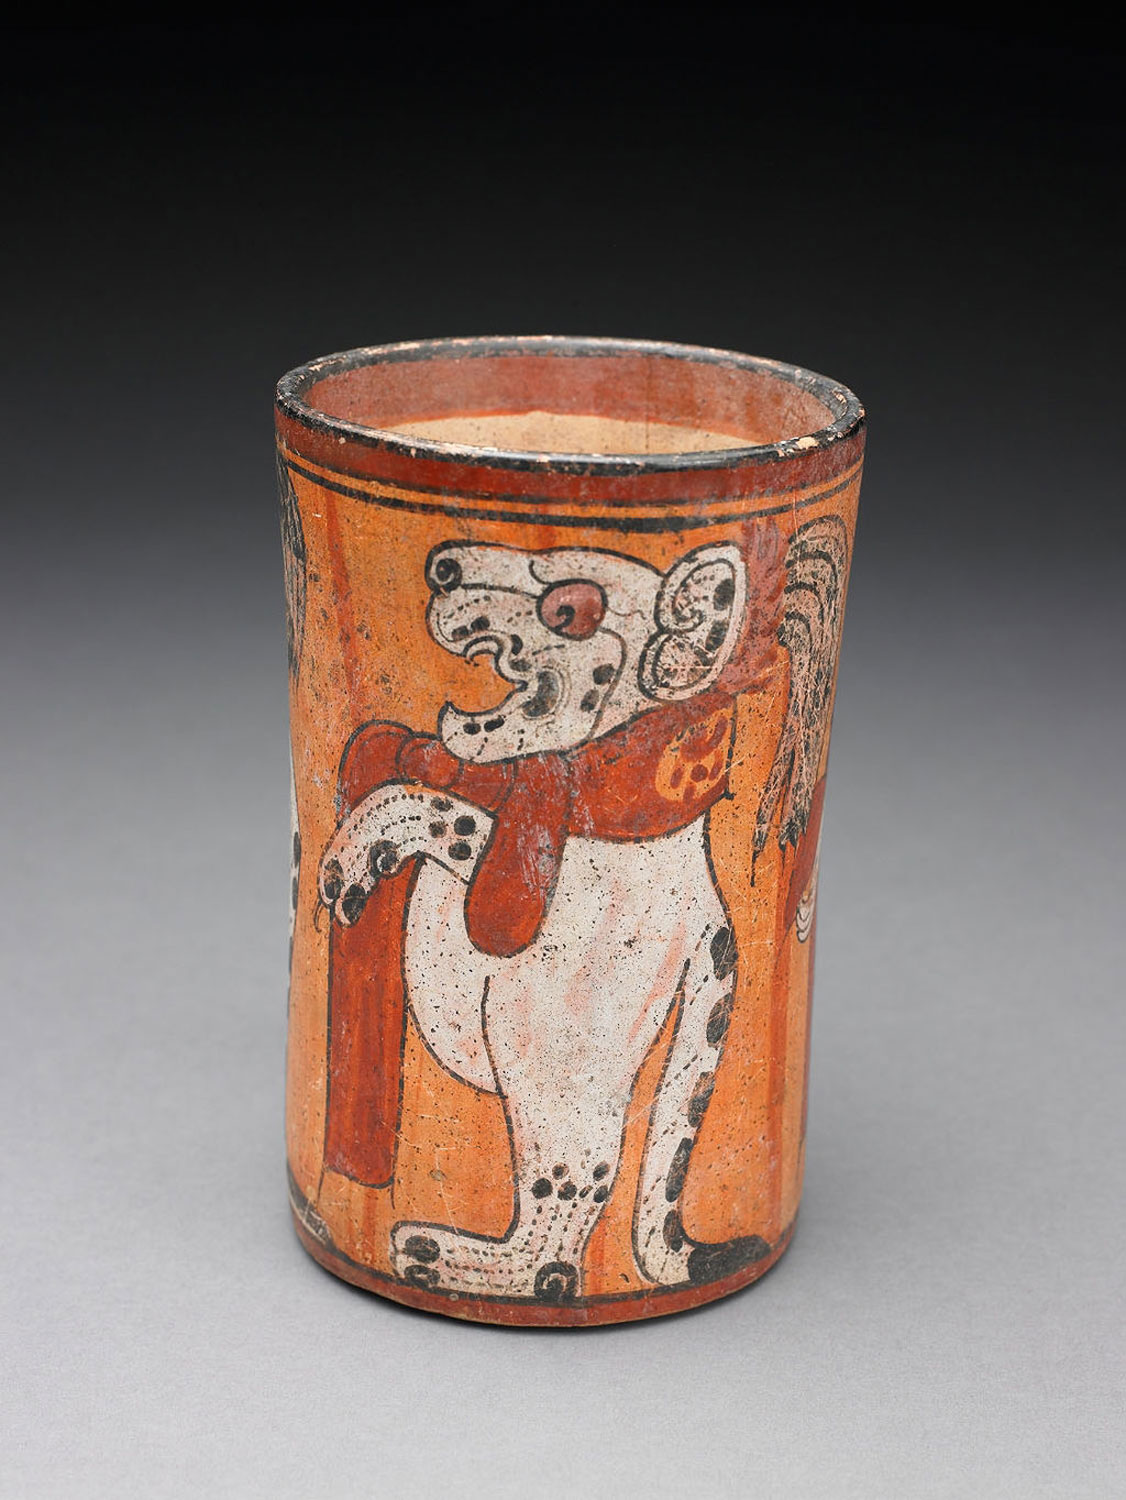 Maya jaguar ' way'  (alter ego) with scarf on a vessel:  wikivisually.com .